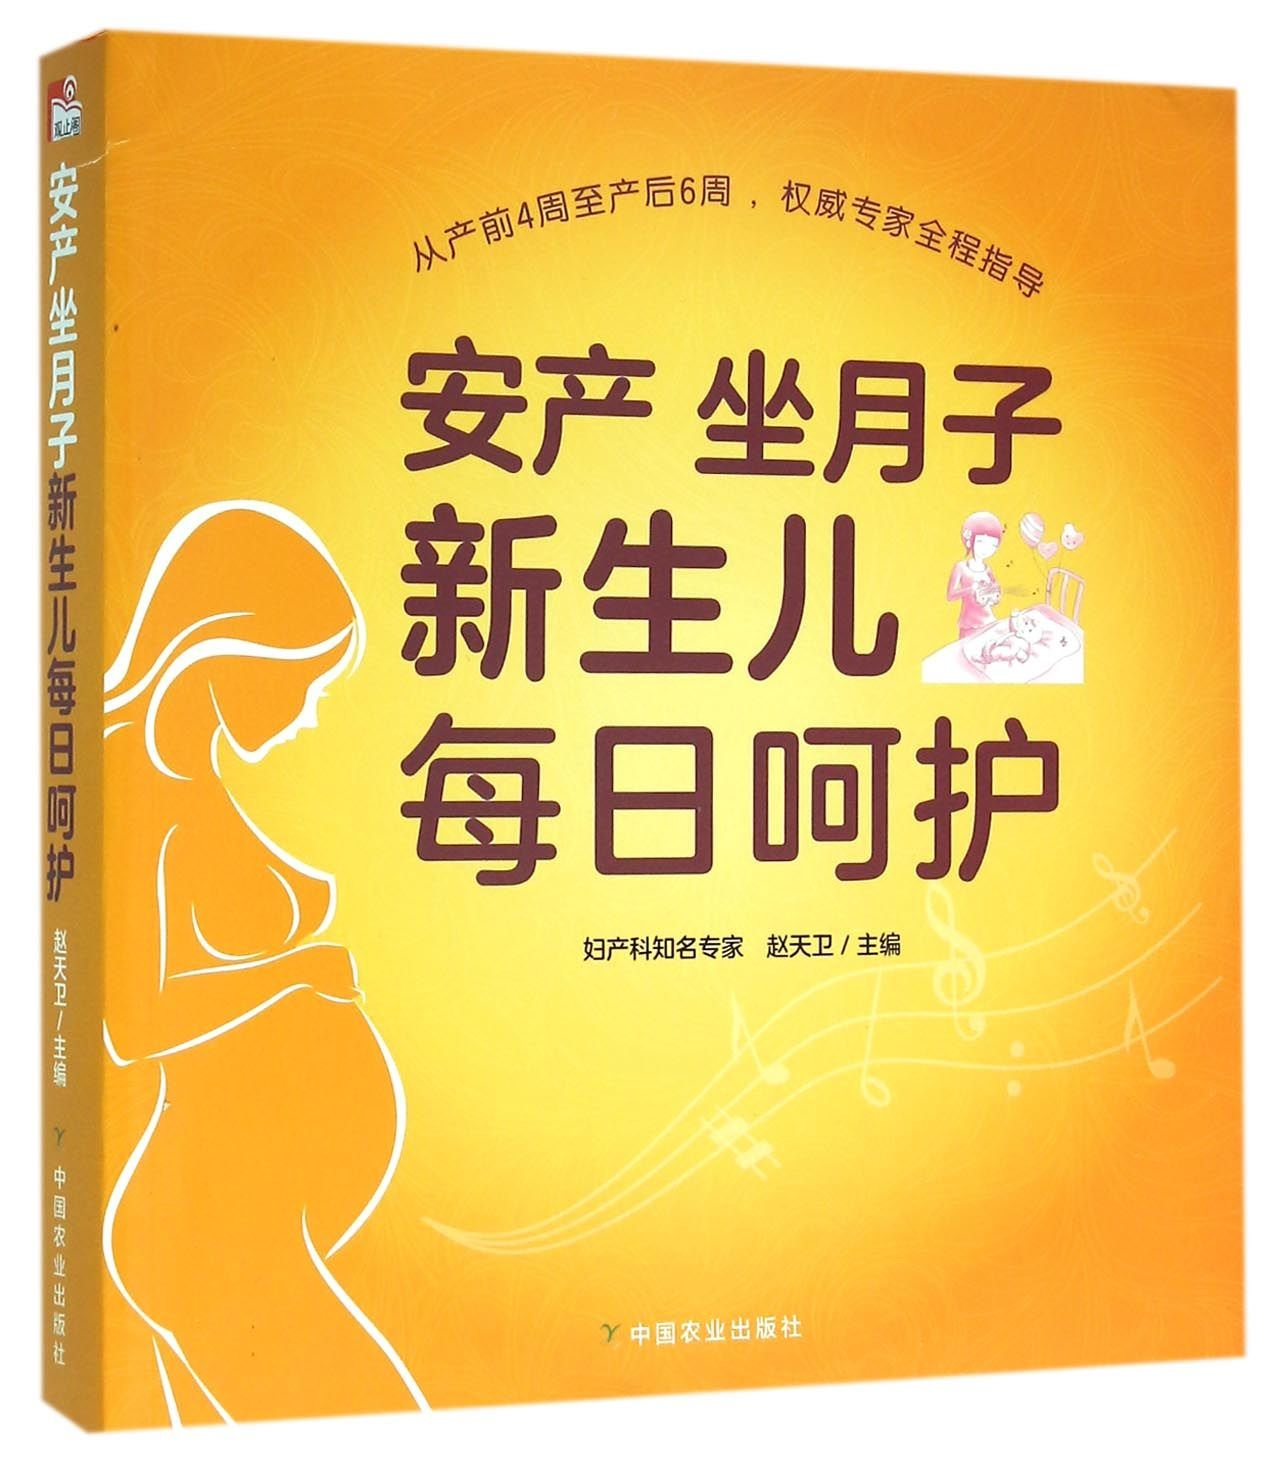 Read Online How to Stay Healthy and Keep Comfortable During Postnatal Period and How to Take Care of a Newborn (Chinese Edition) pdf epub